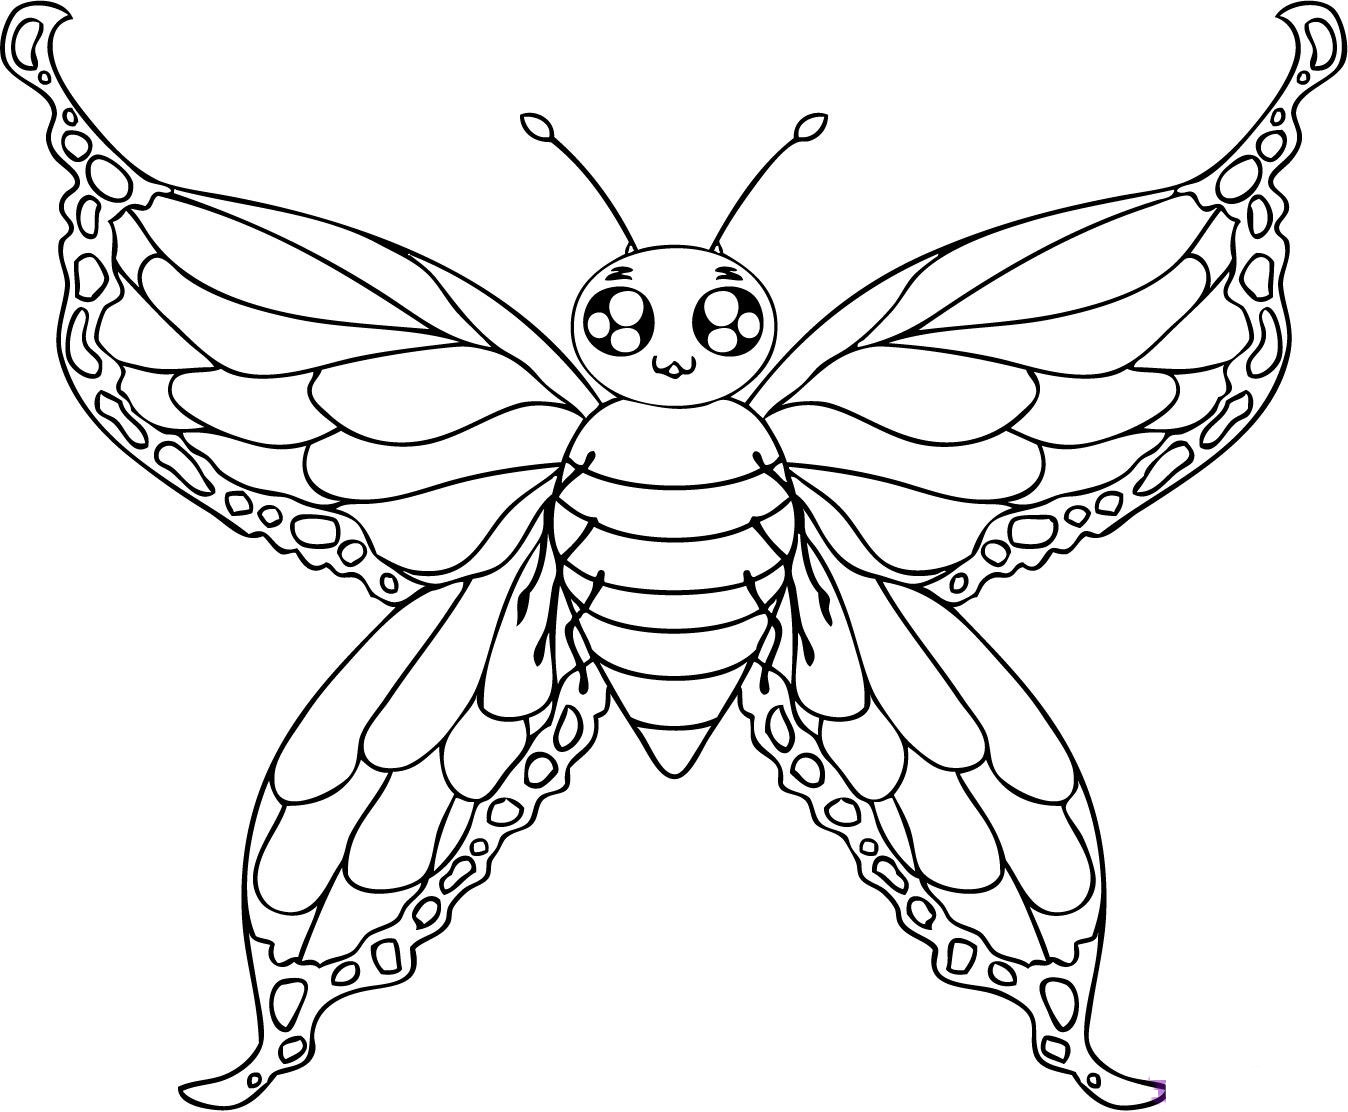 coloring worksheets butterfly free printable butterfly coloring pages for kids coloring worksheets butterfly 1 1